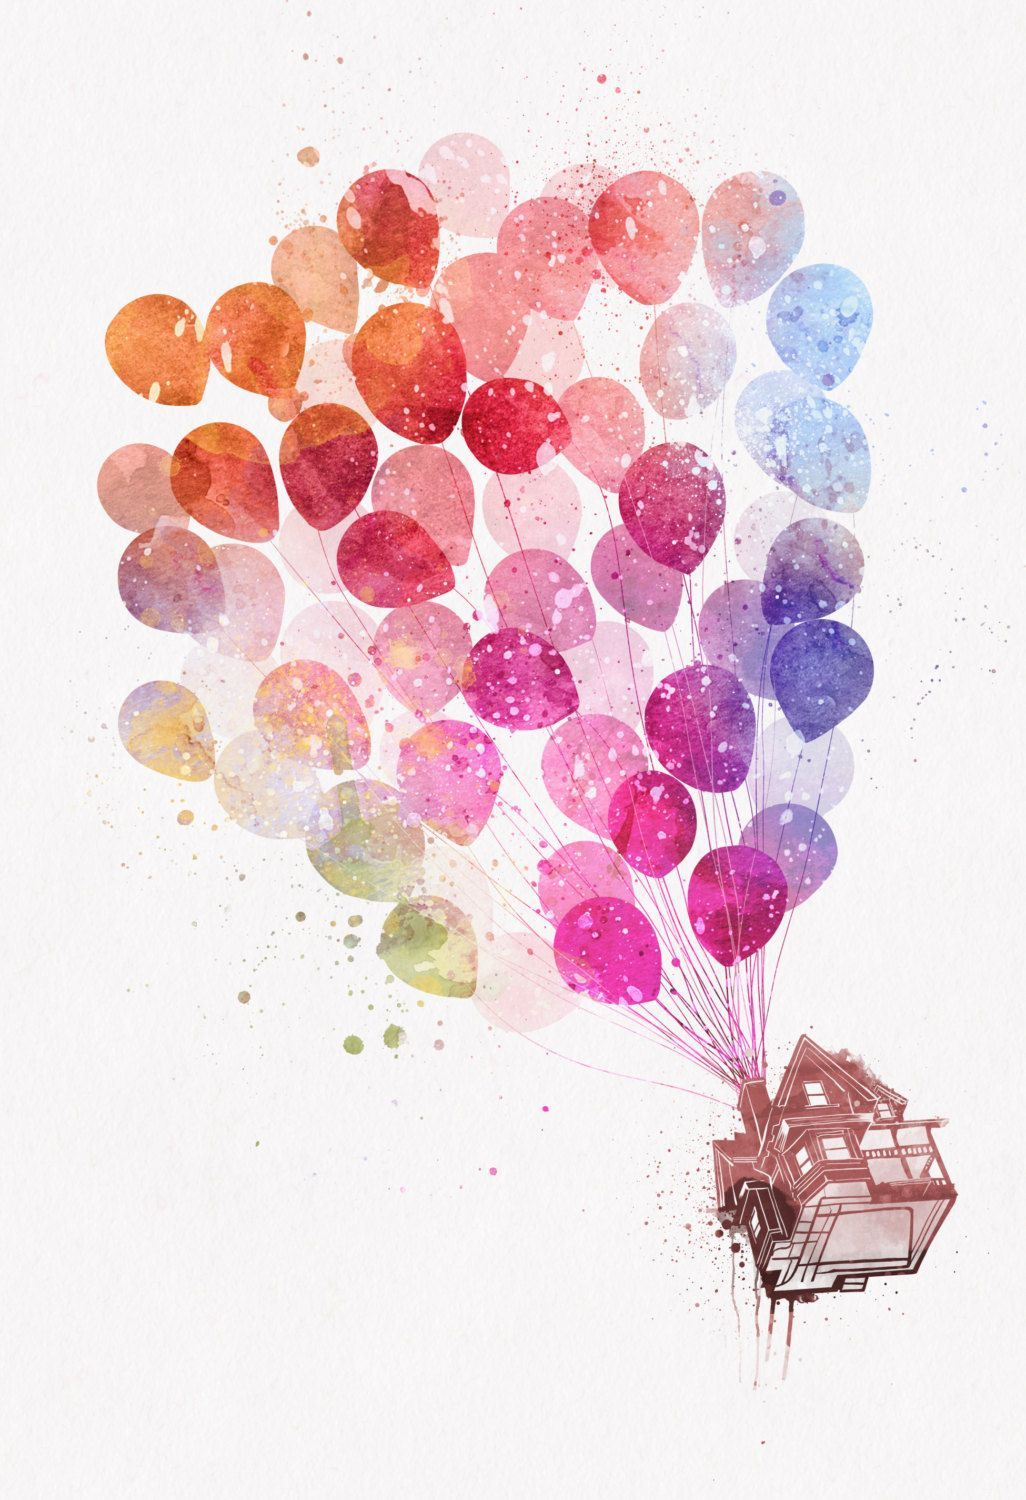 Up House Balloons Disney Pixar Up Flying House With Balloons Watercolor Splatter Art